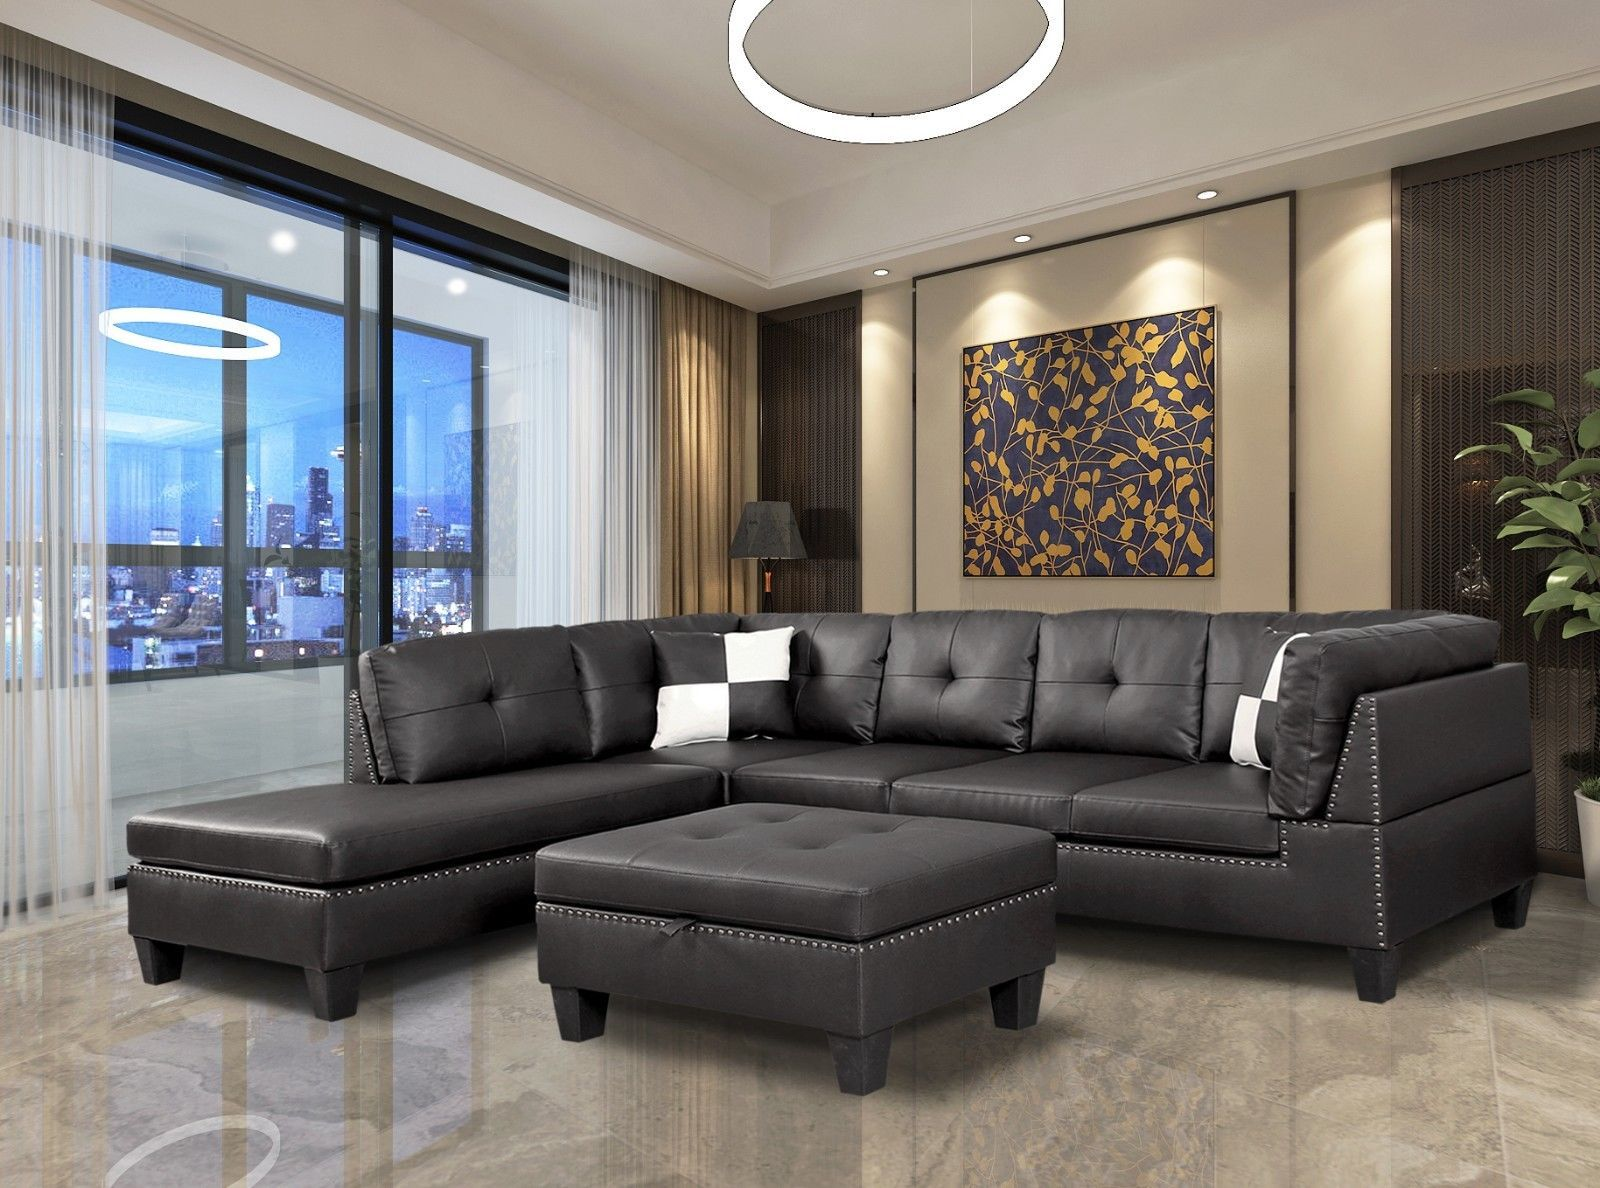 Fine Winpex Nail Head Trim Faux Leather Sectional Sofa With Uwap Interior Chair Design Uwaporg